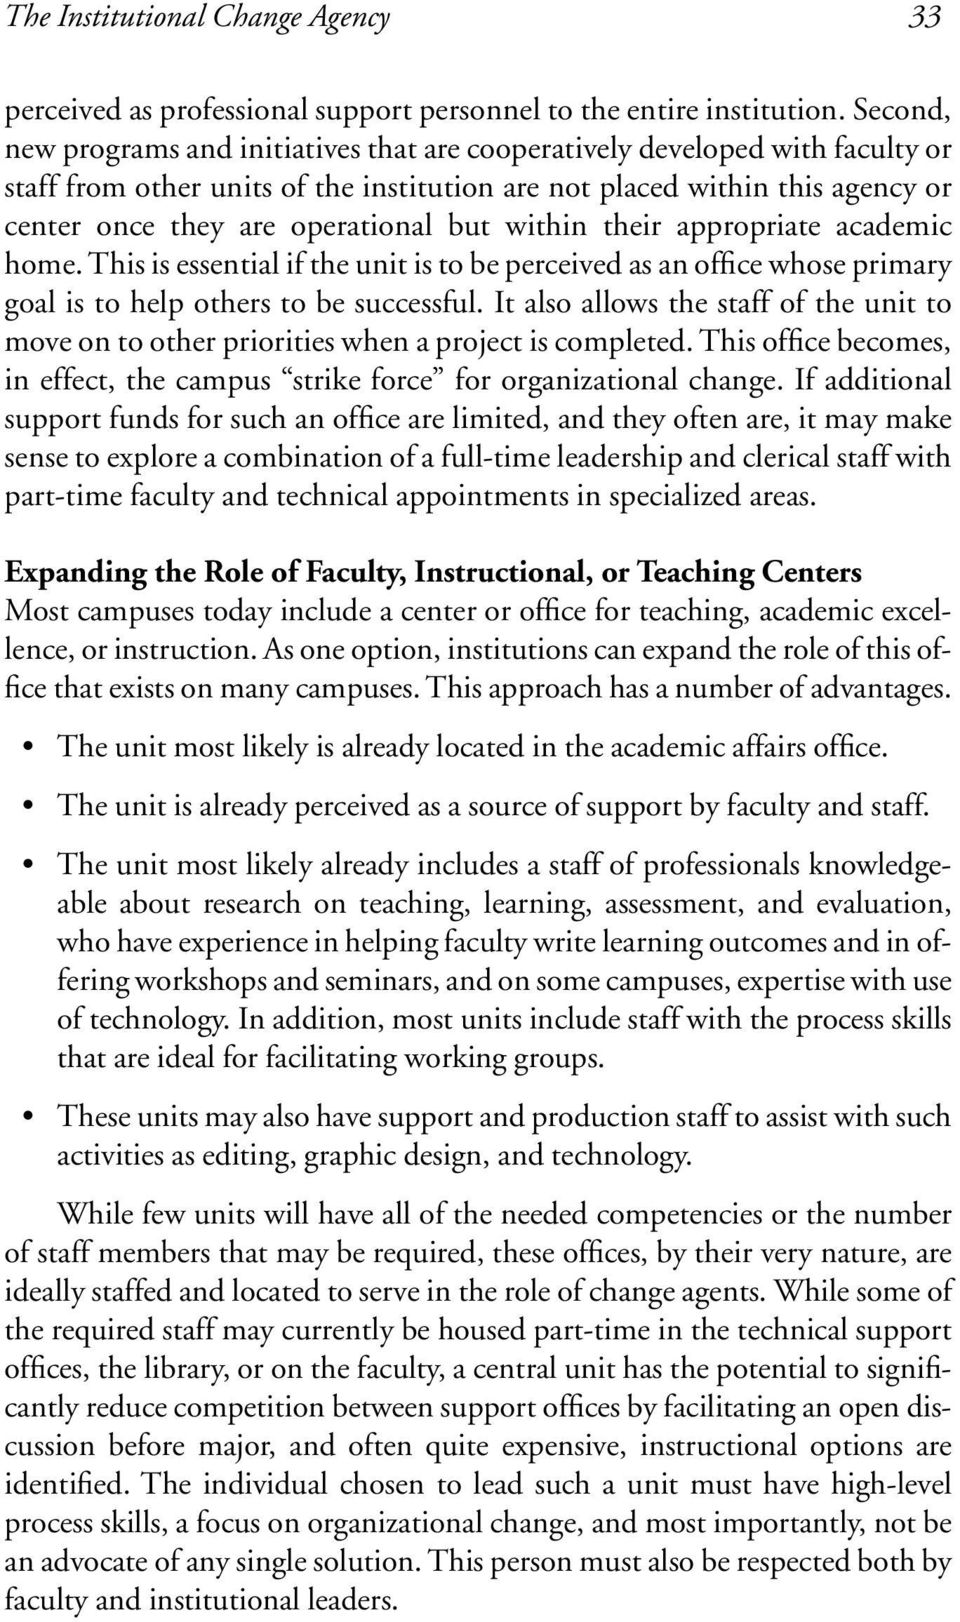 but within their appropriate academic home. This is essential if the unit is to be perceived as an office whose primary goal is to help others to be successful.